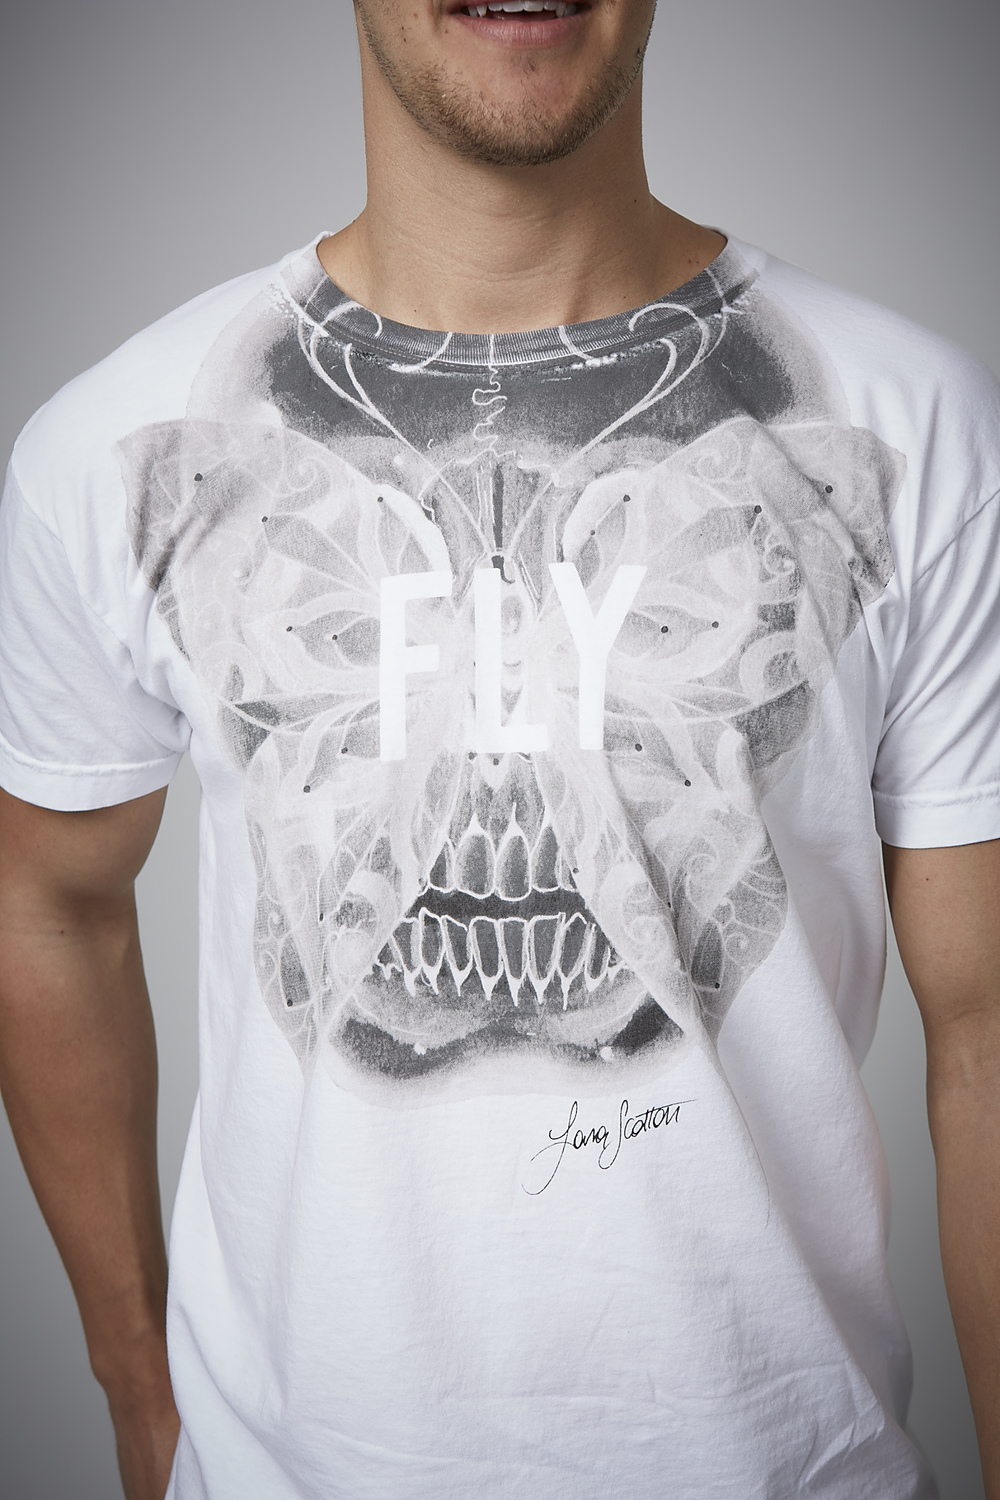 F+M Fashion and Music. Fly Tee. Original Skull artwork by Lara Scotton.